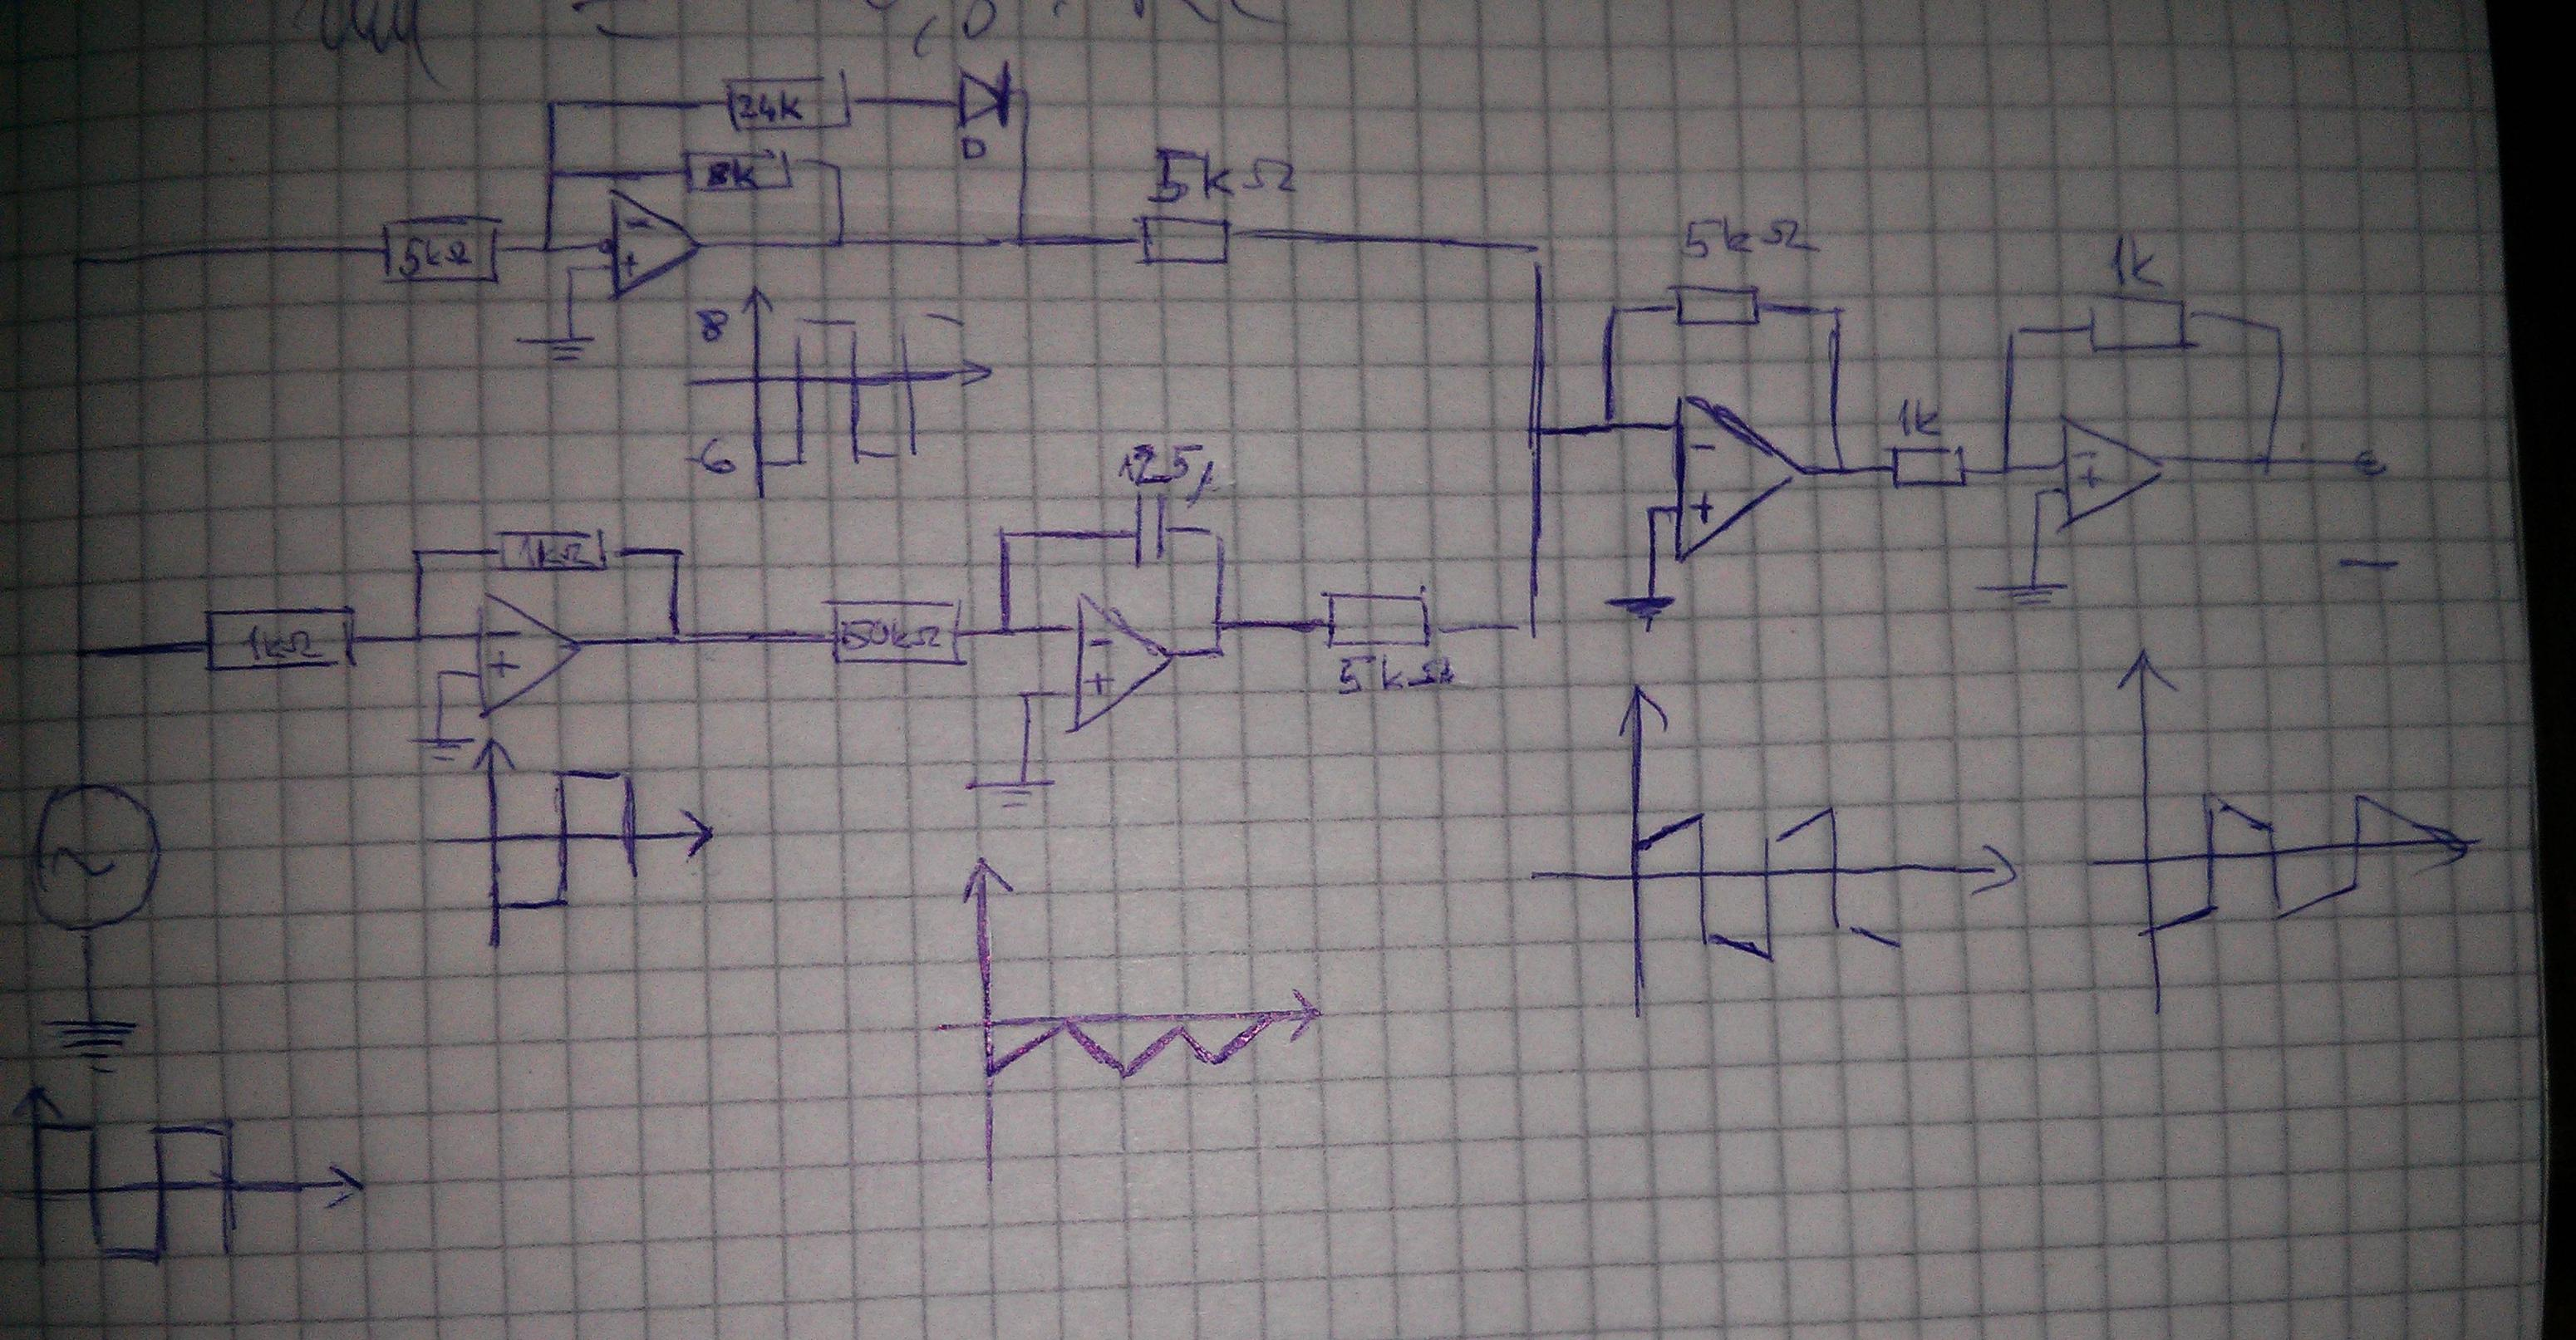 Op Amp Designing Op Amp Circuit That Has The Following Signal At The